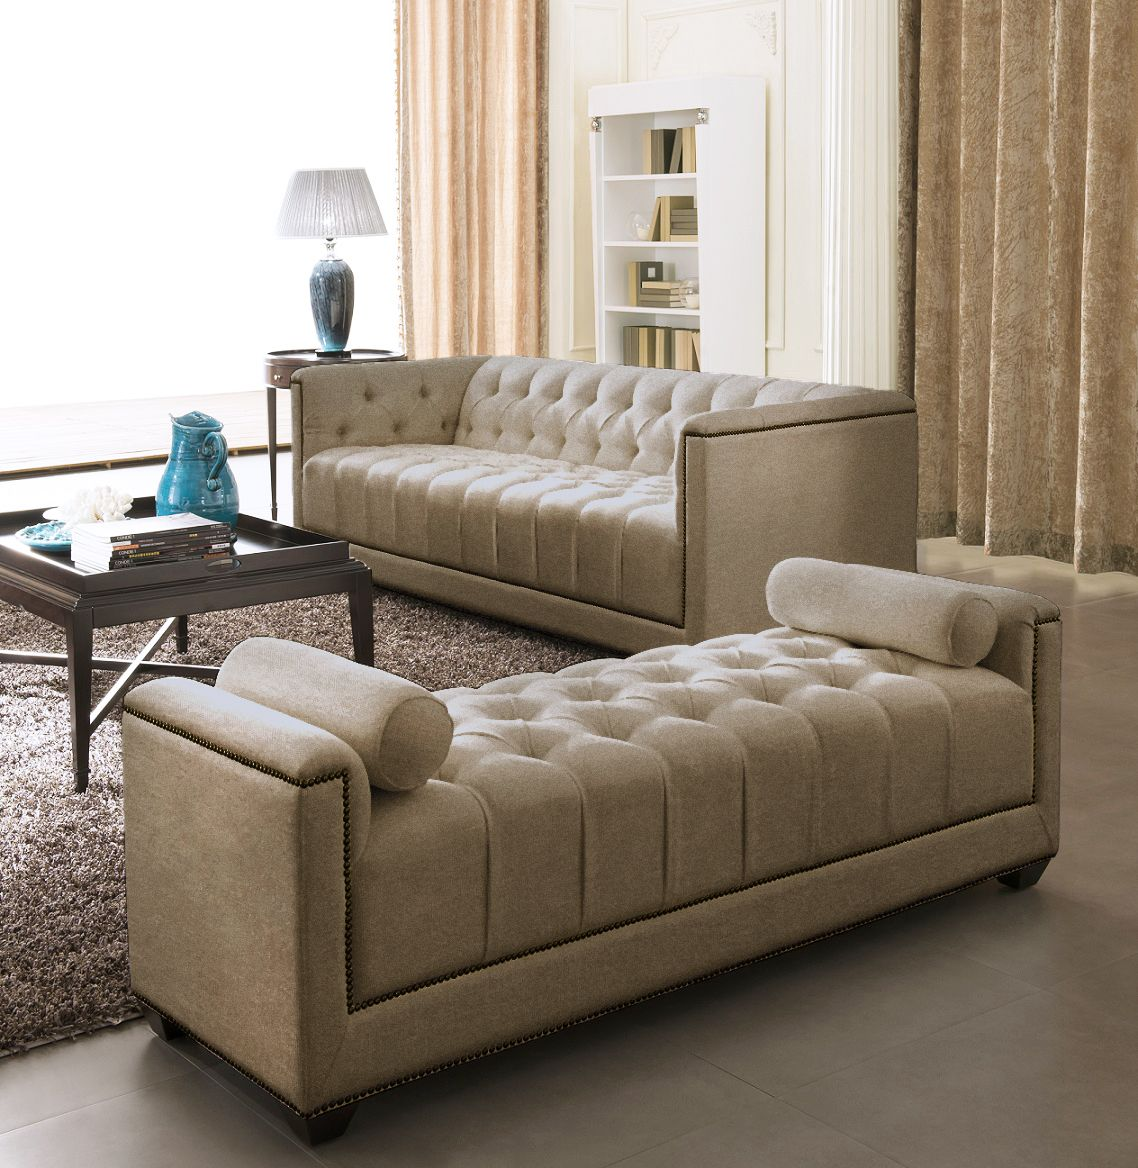 modern sofa set designs for living room | Vijay | Living room sofa ...